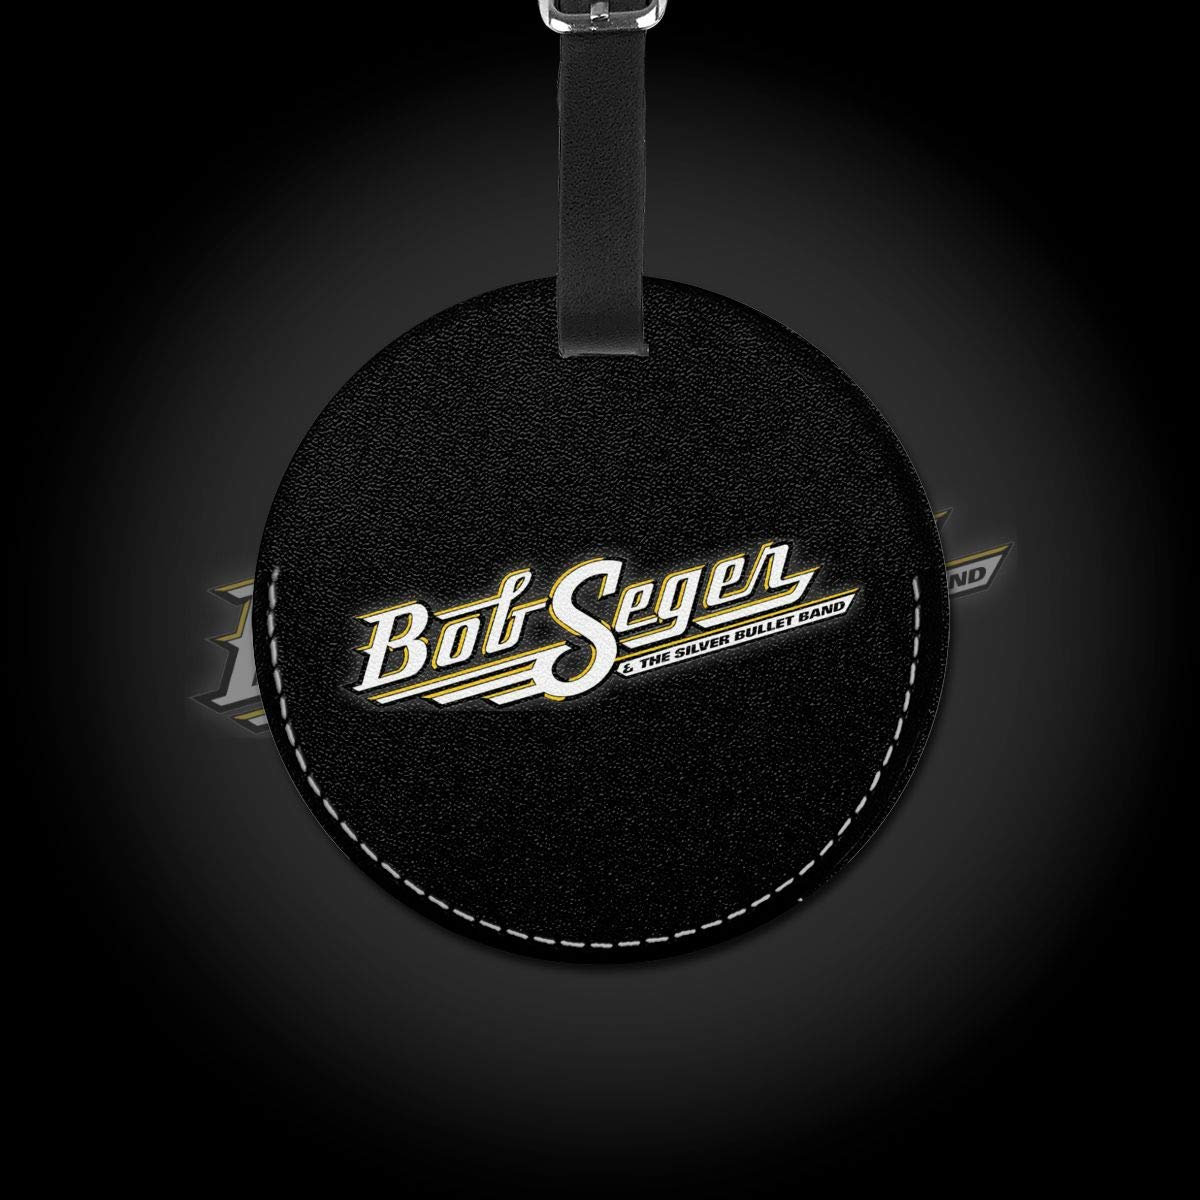 Bob Seger The Silver Bullet Band Travel Leather Round Luggage Tags Suitcase Labels Bag